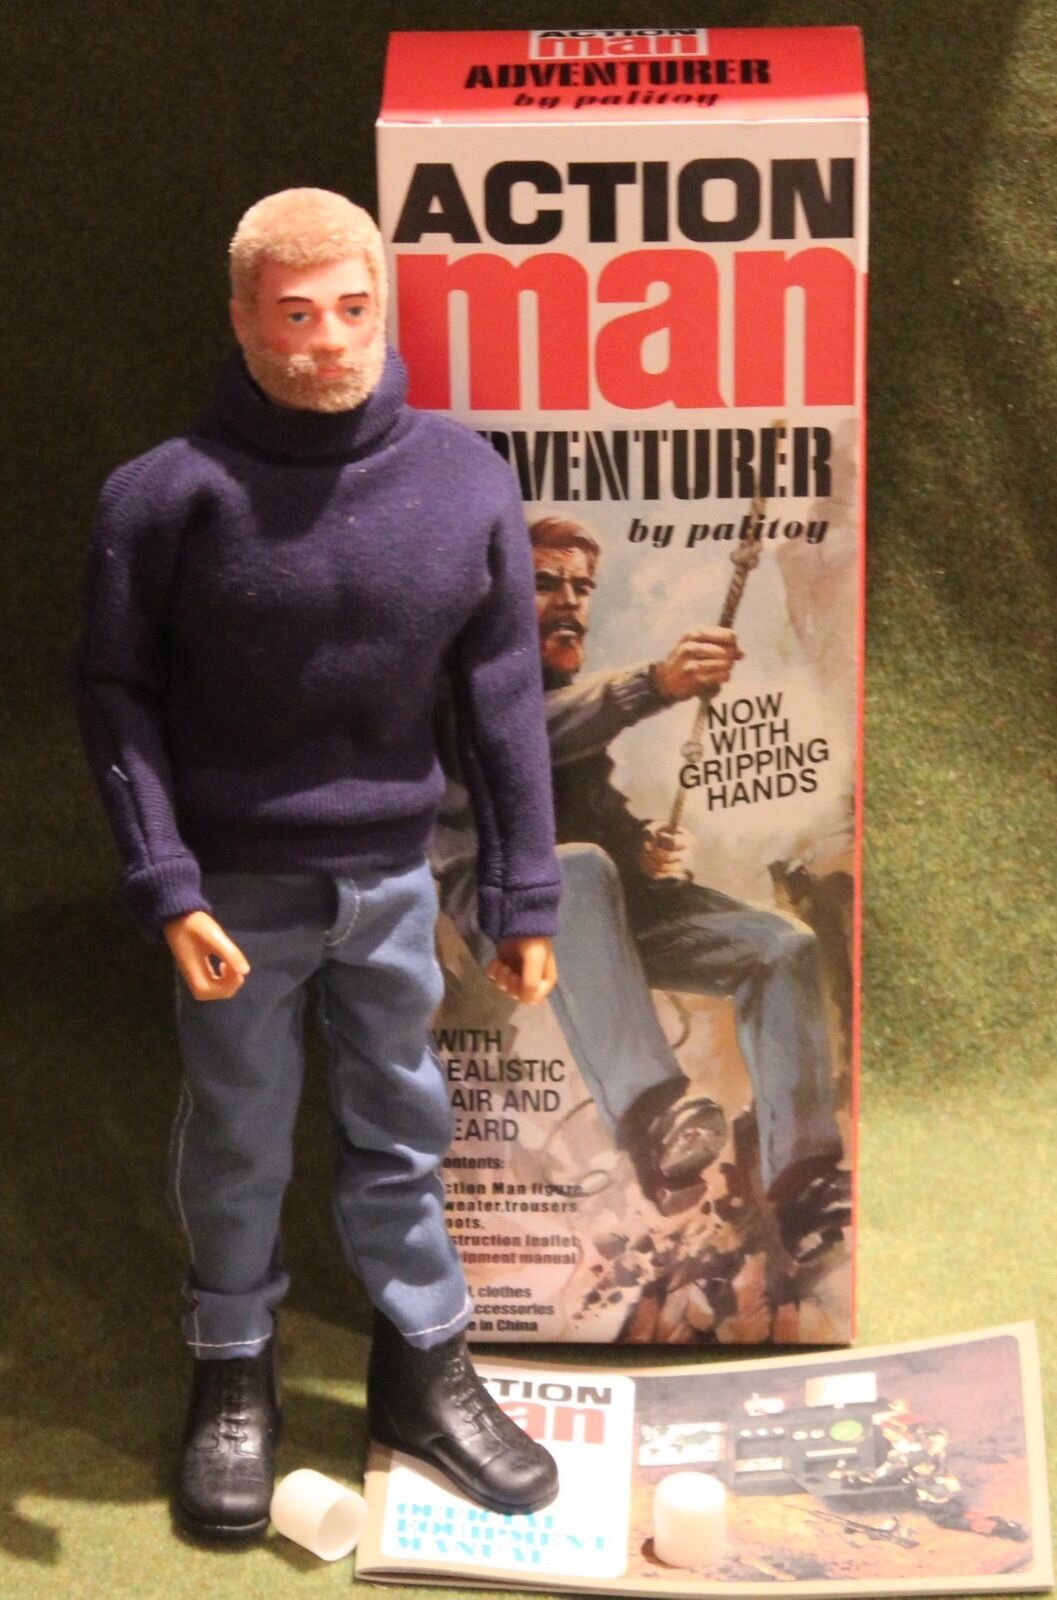 Vintage action man 40th anniversary blonde hair adventurer gripping hands boxed